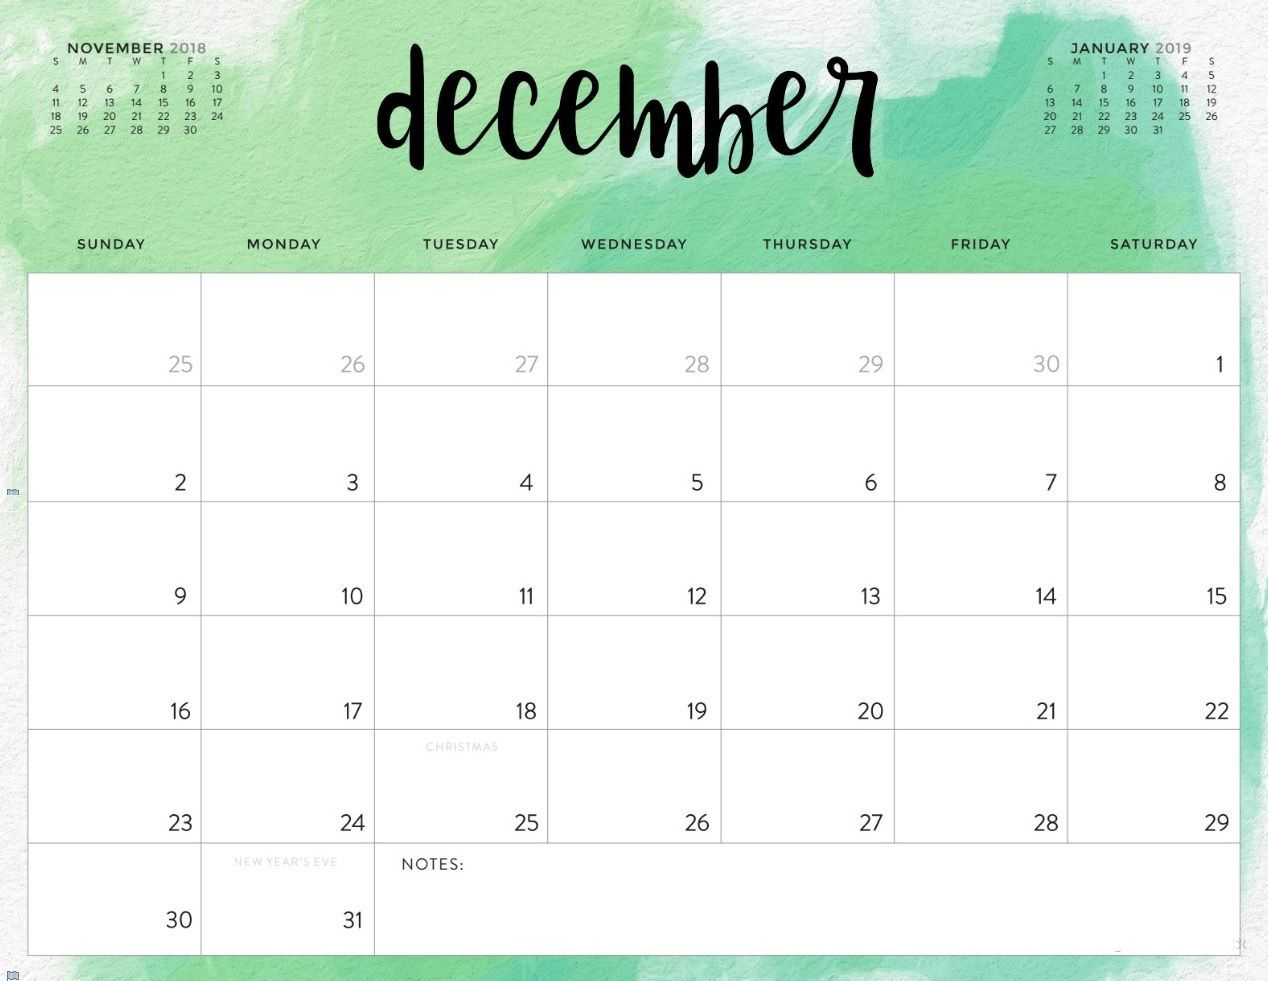 december 2018 calendar uk printable ukcalendar decemberukcalendar december2018calendaruk